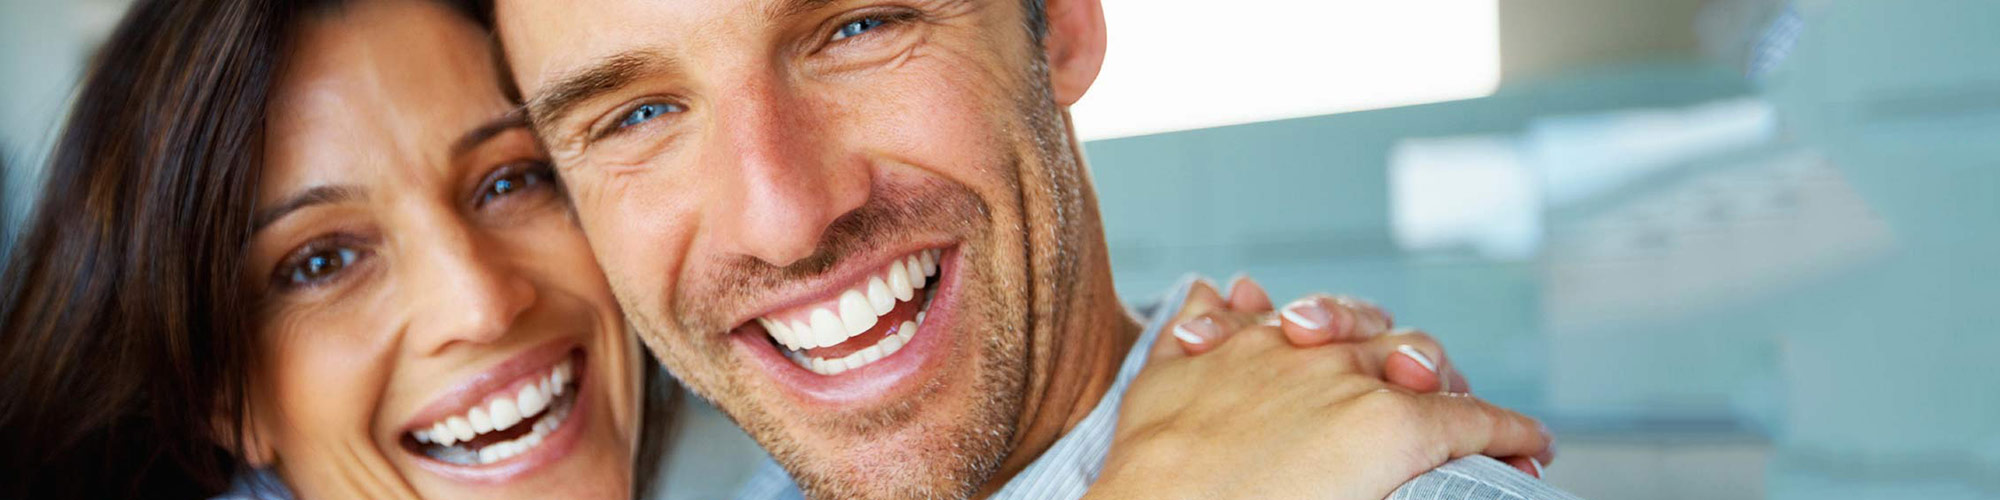 tooth whitening brampton